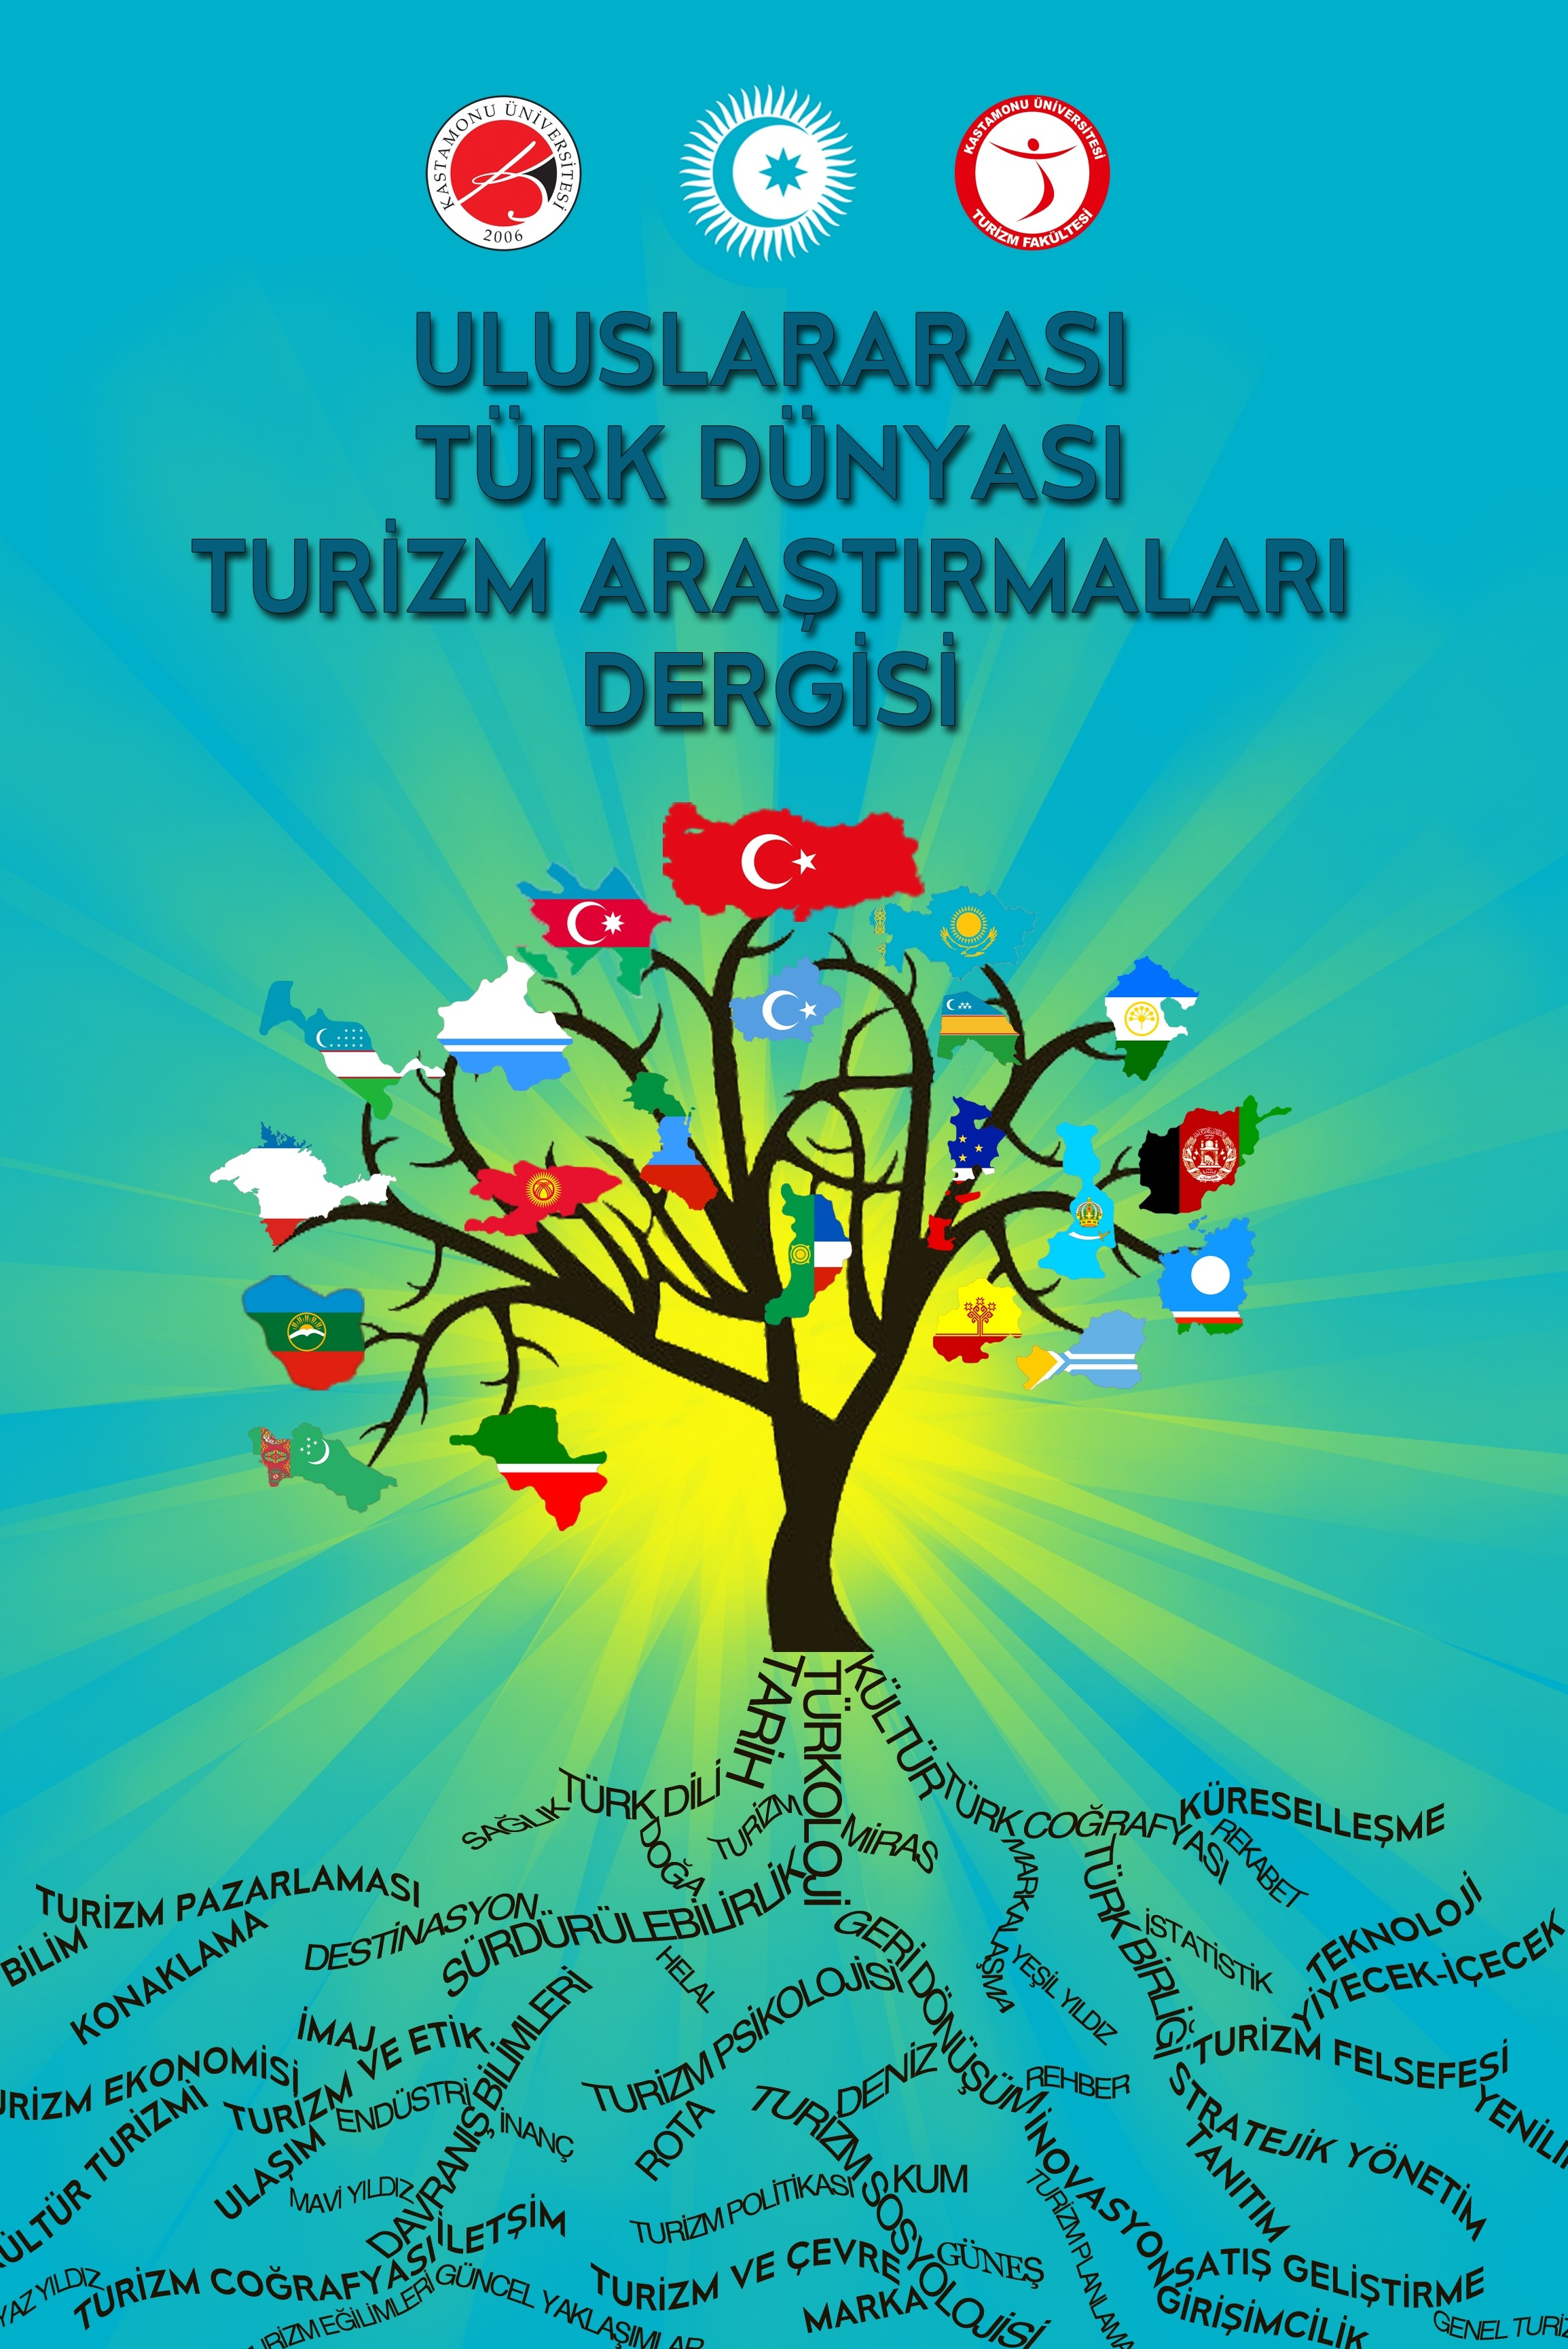 International Journal of Turkic World Tourism Studies